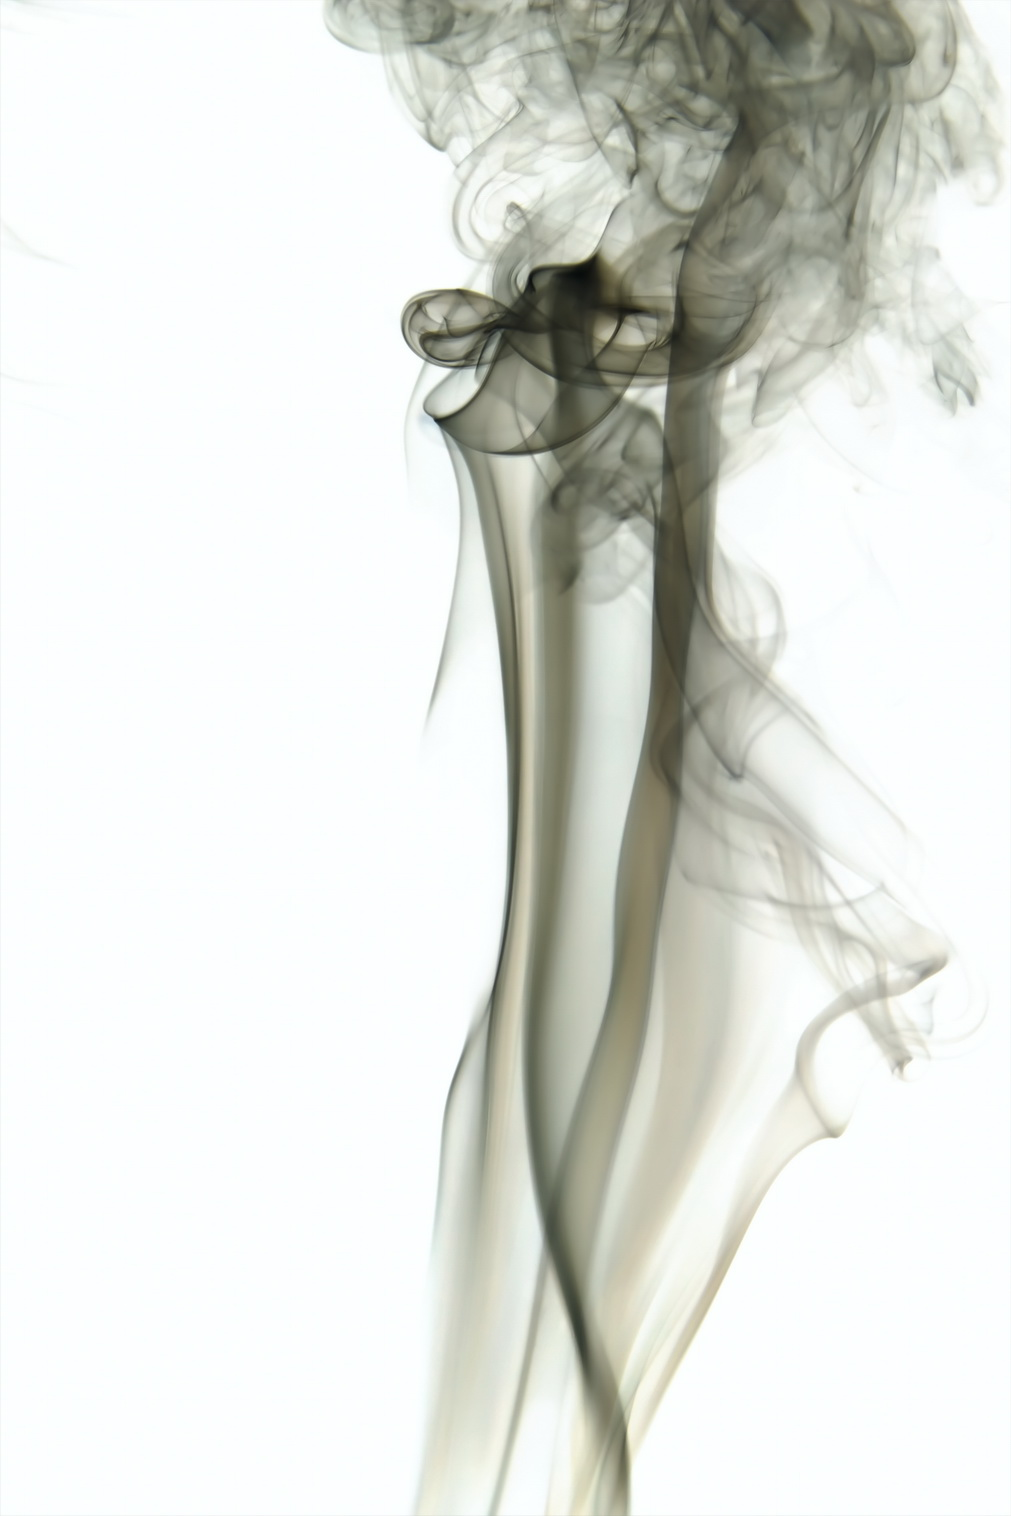 Black smoke, Abstract, Aroma, Aromatherapy, Color, HQ Photo